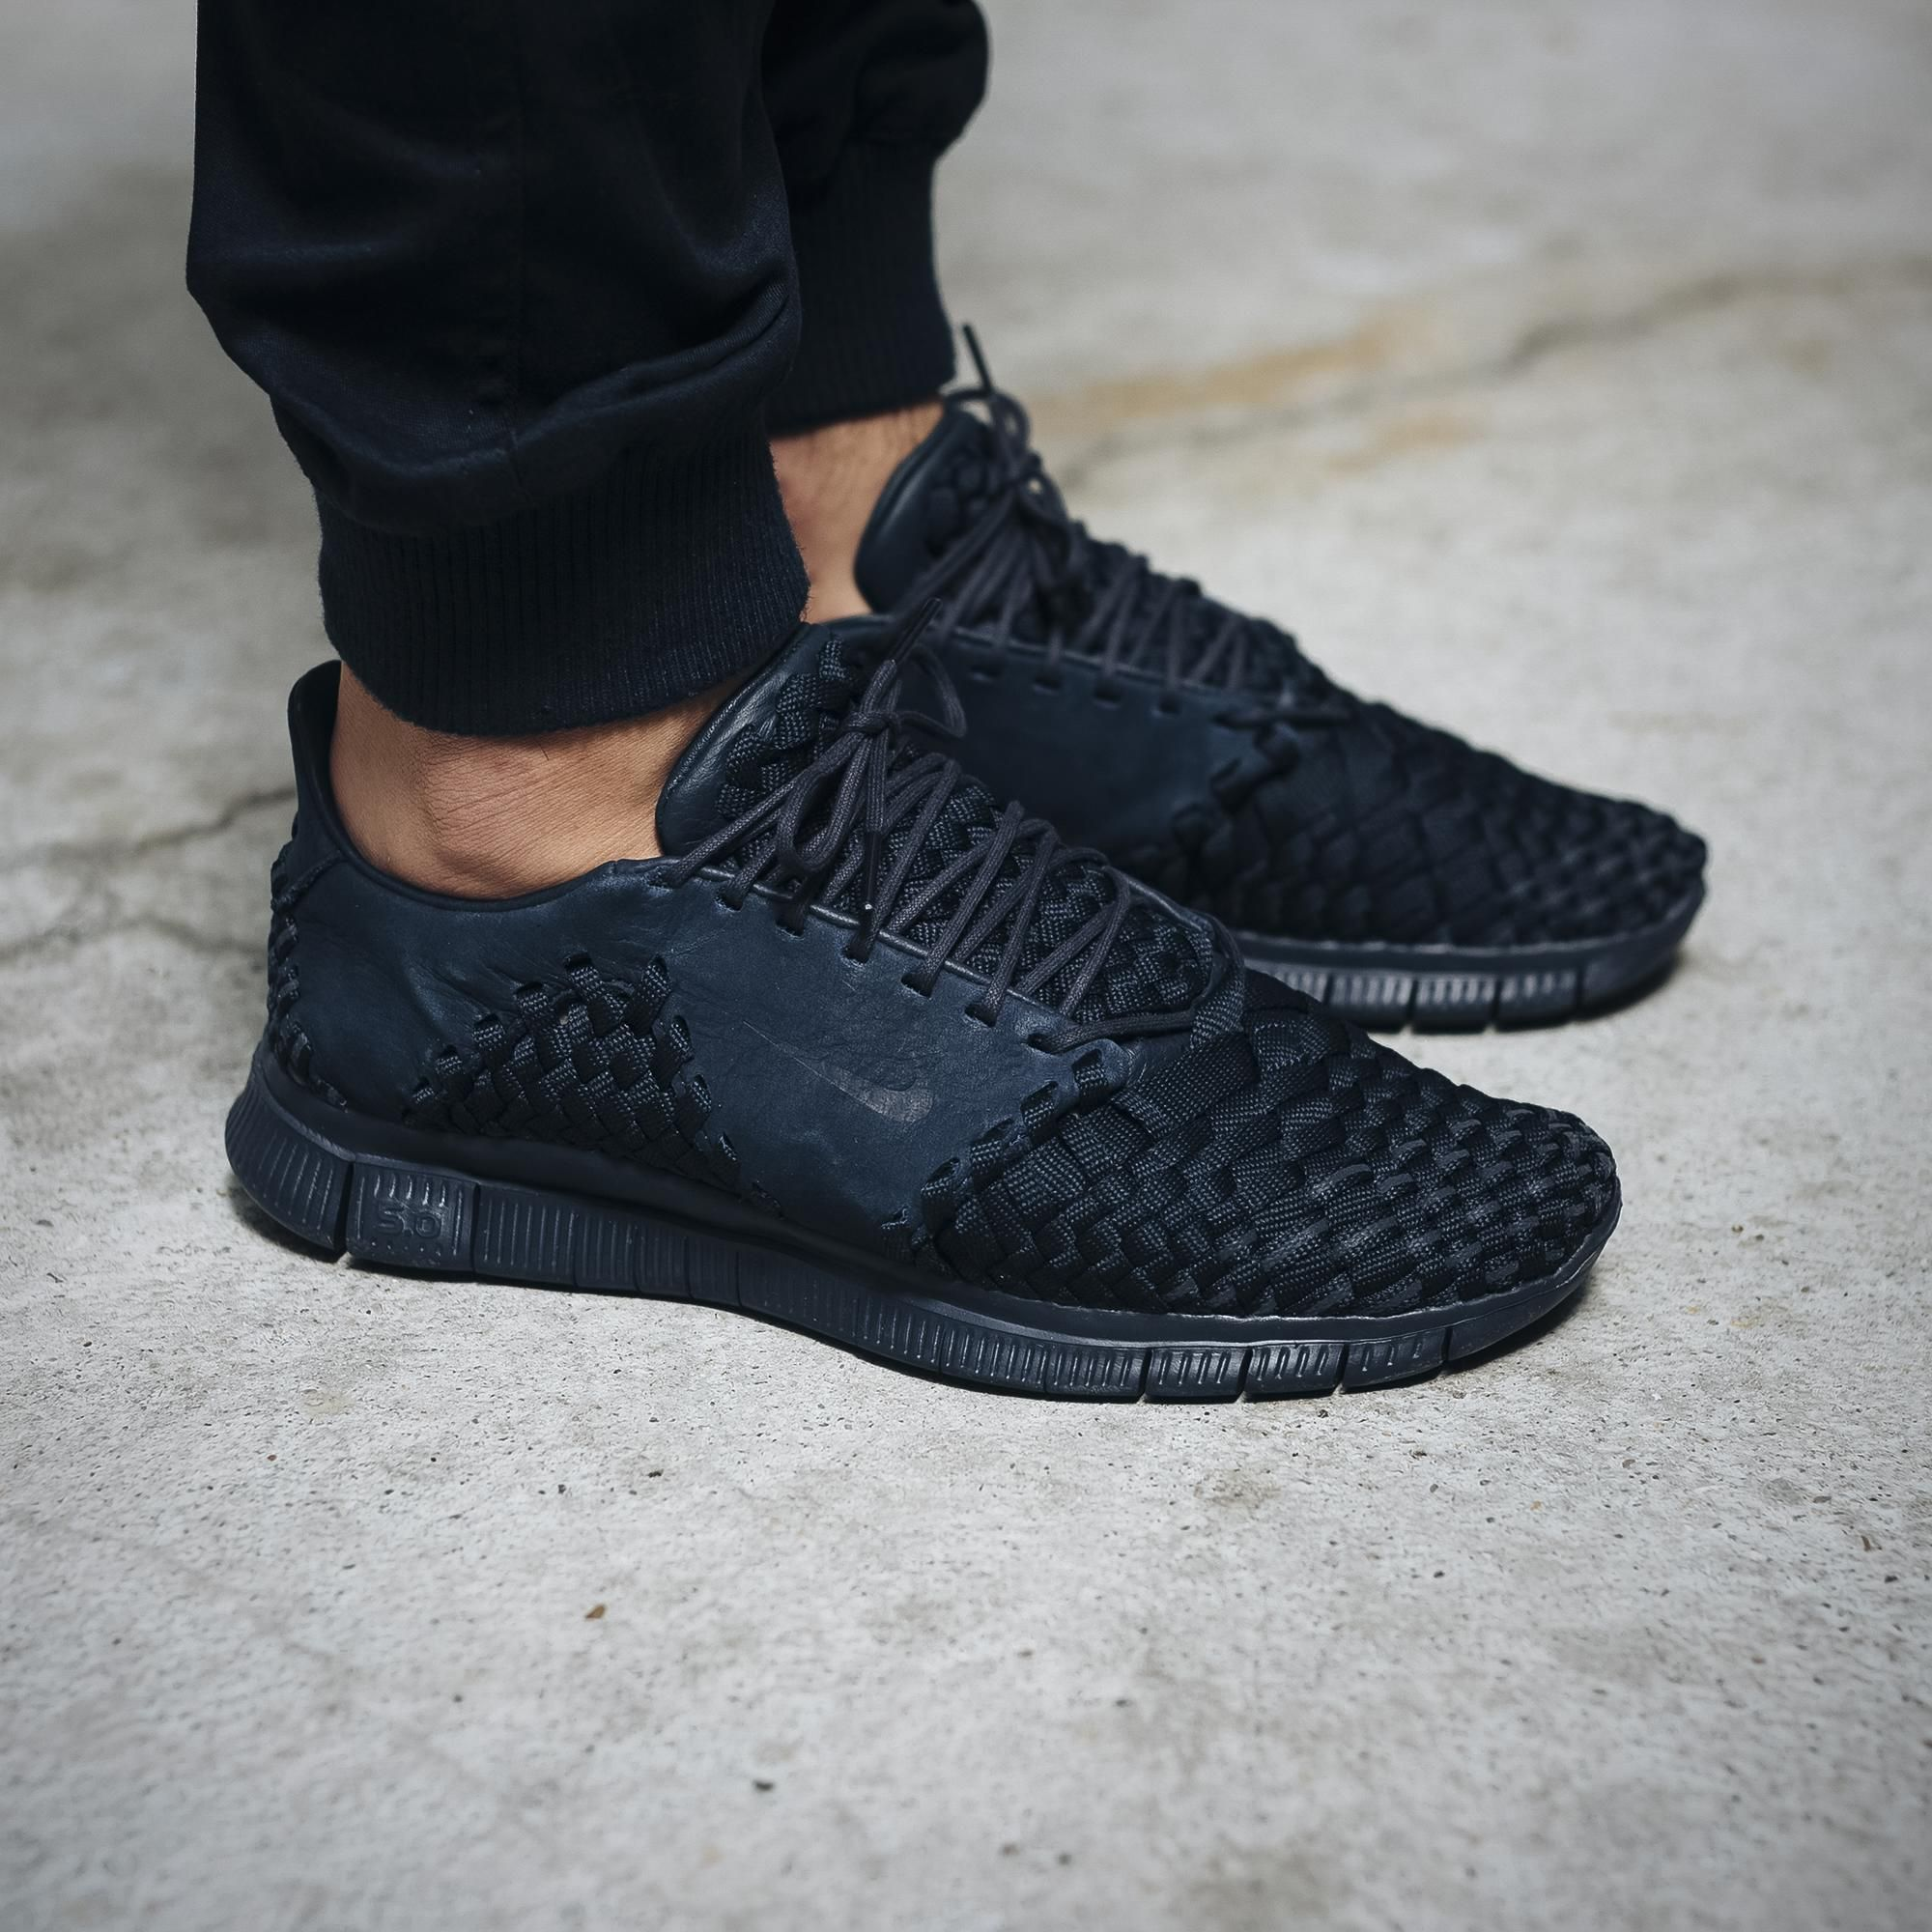 The Nike Free Inneva Woven 2 Obsidian Is Now Available For Purchase